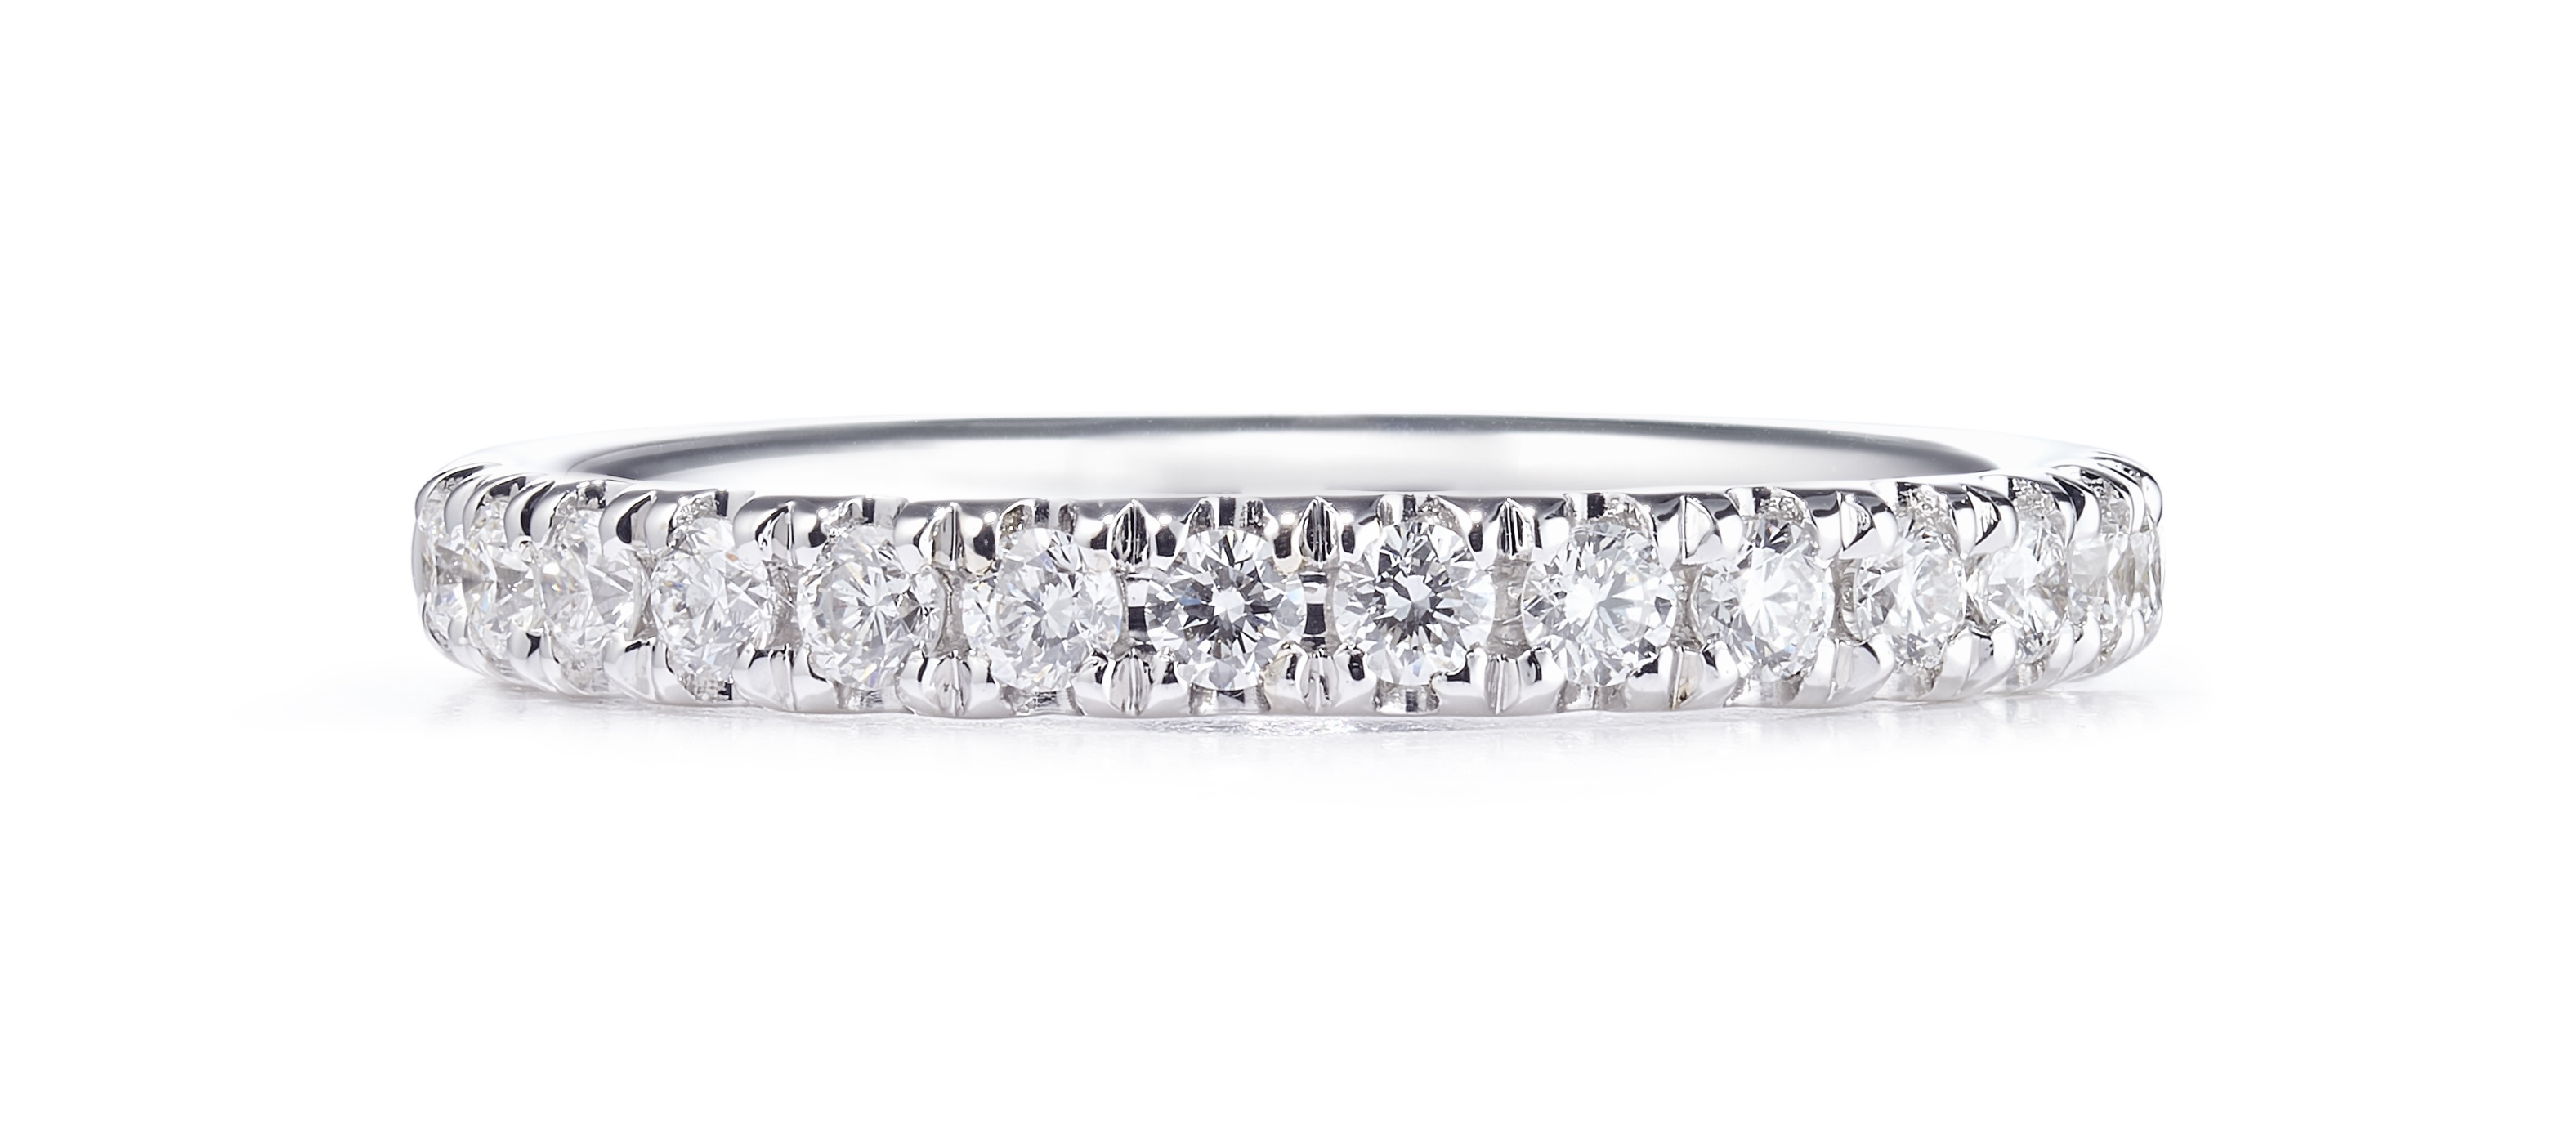 0.17ct Platinum Mounted Micro-Claw Set Eternity Ring – Finger Size M